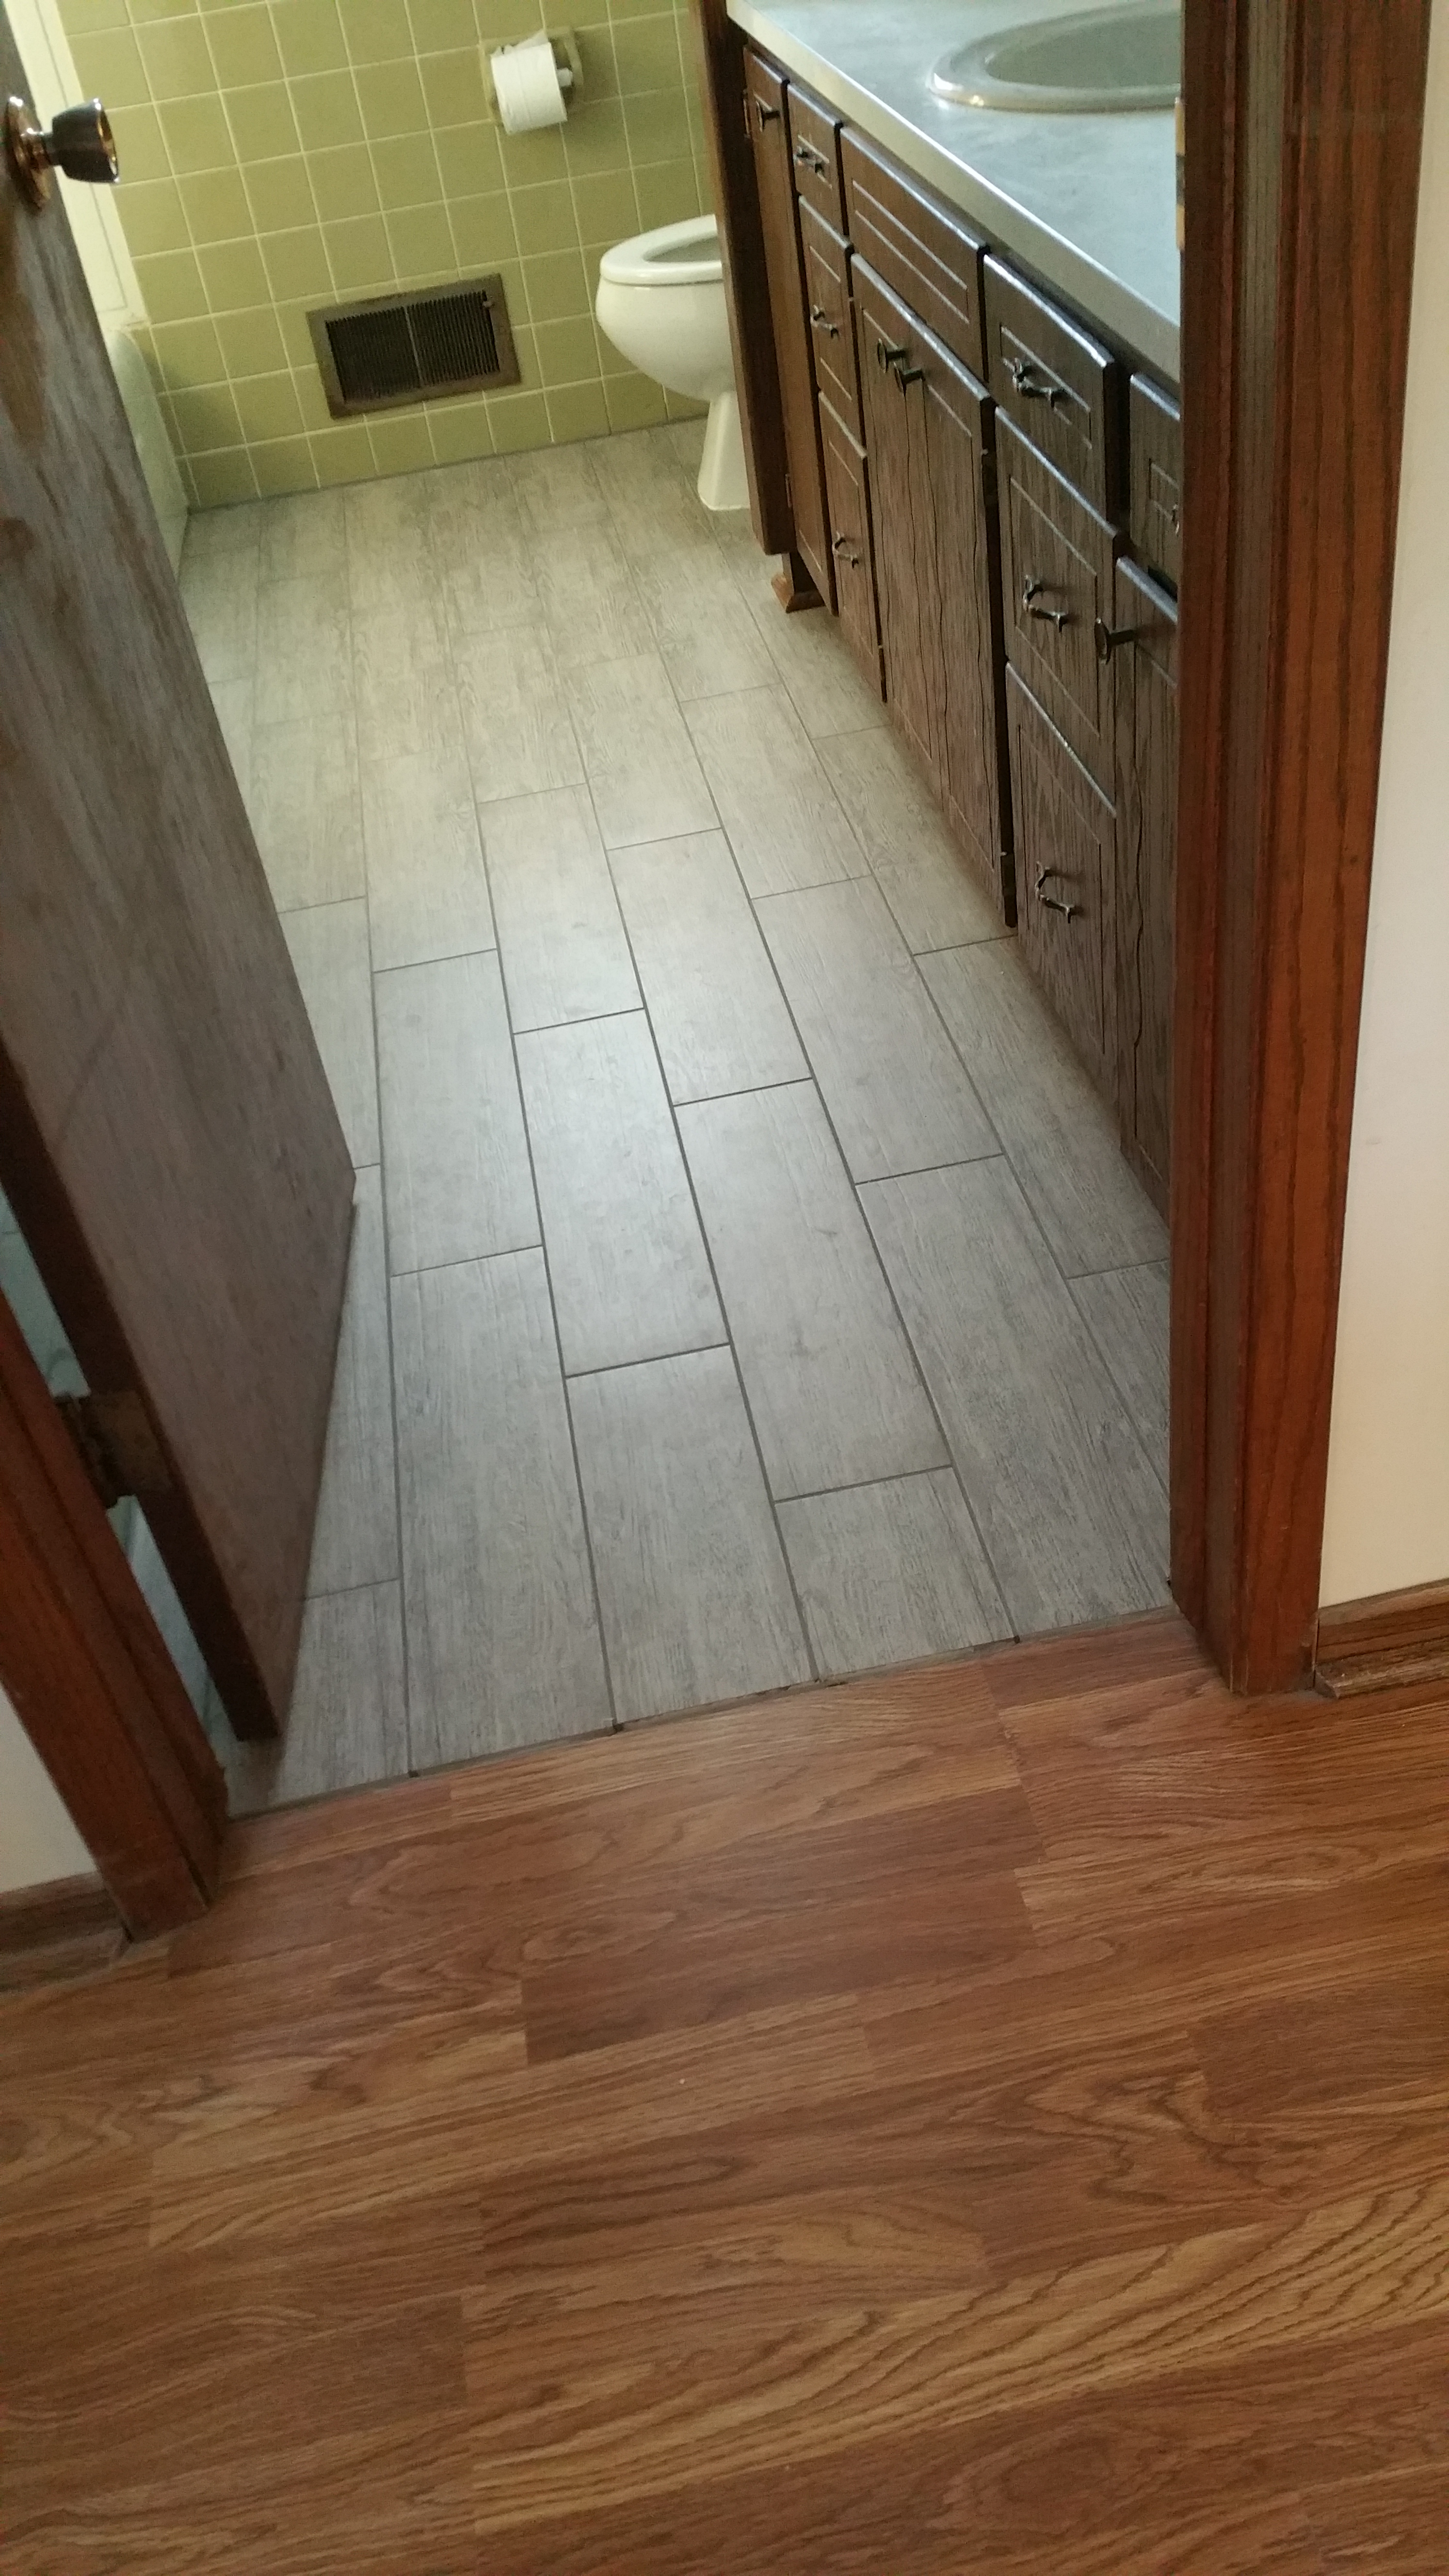 Reviews custom installations inc love the tile floors professional throughout process kathy in office even went above and beyond and helped with some design aspects of my kitchen that had dailygadgetfo Image collections